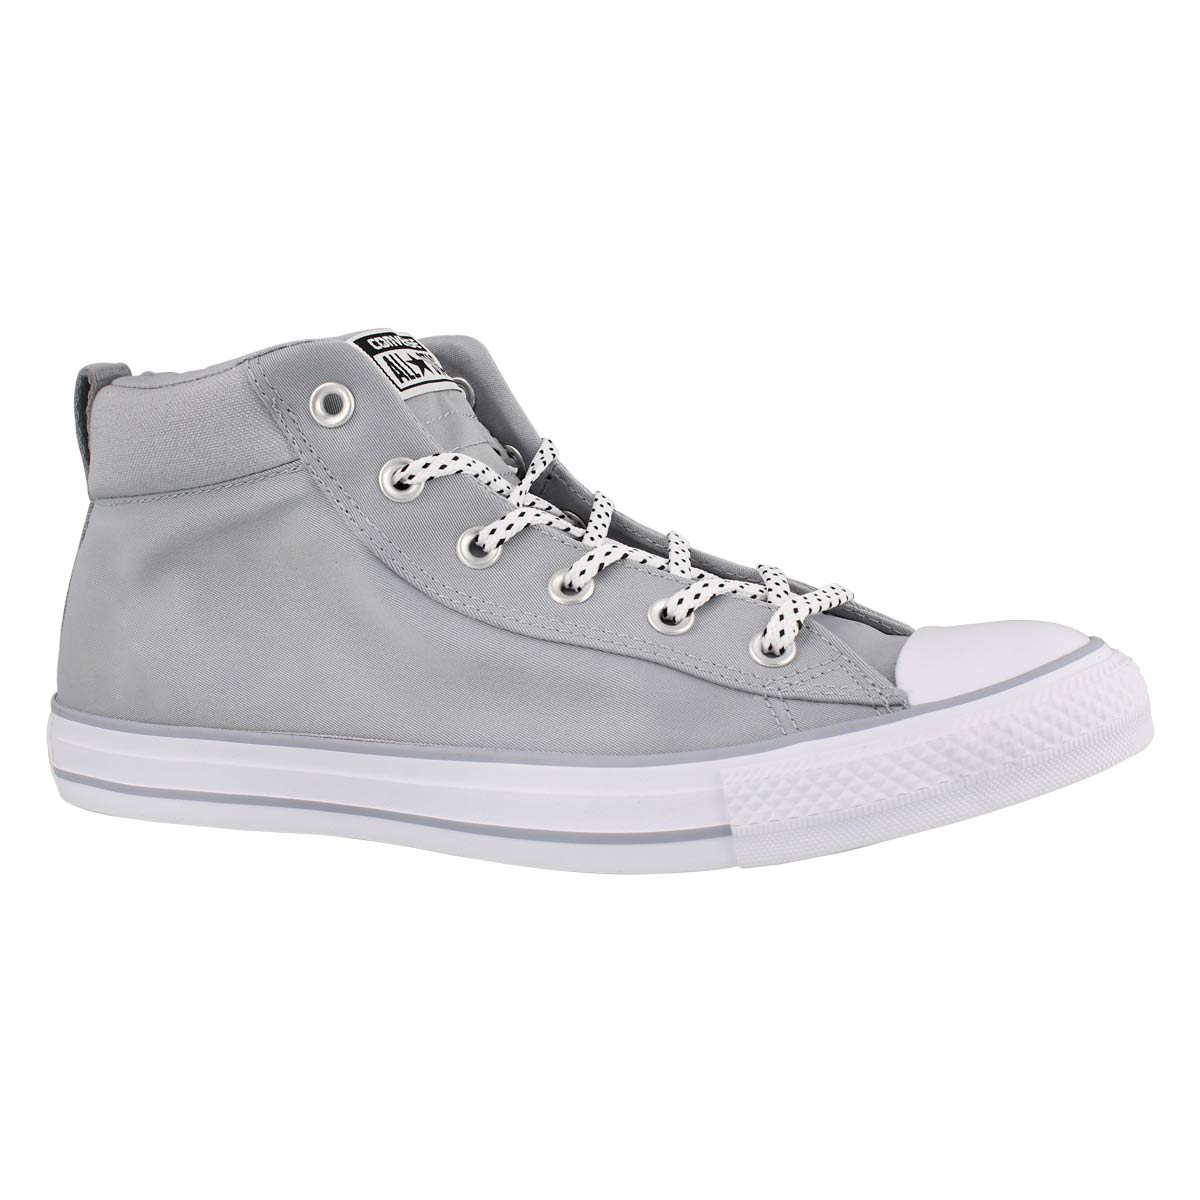 Men's CT ALL STAR STREET MID wolf grey sneakers